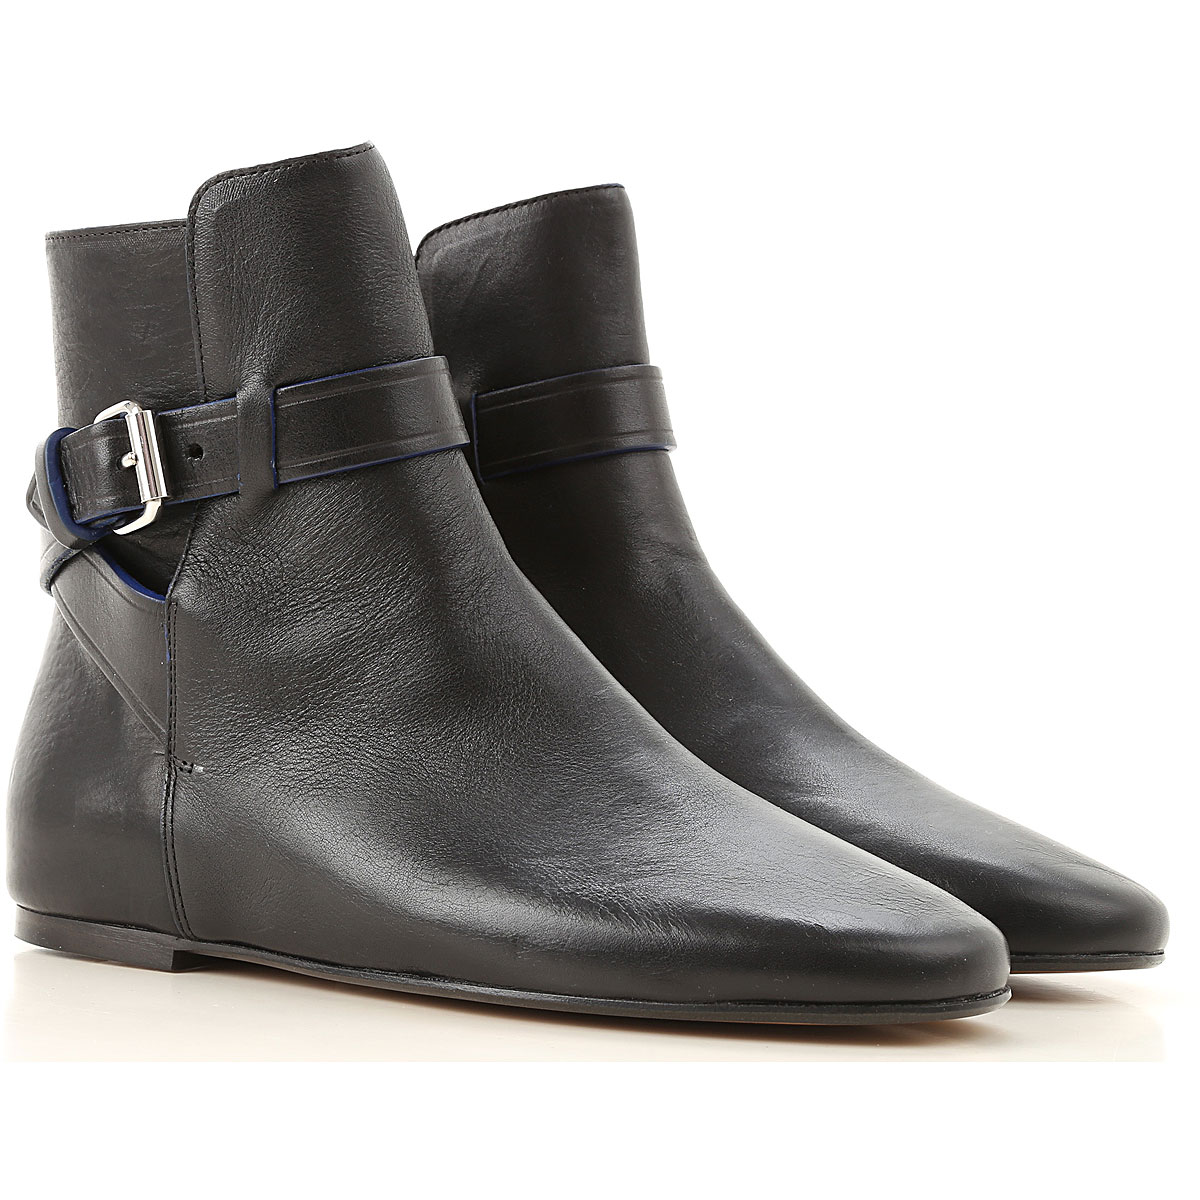 Isabel Marant Boots for Women, Booties On Sale in Outlet, Black, Leather, 2019, 7 8 9